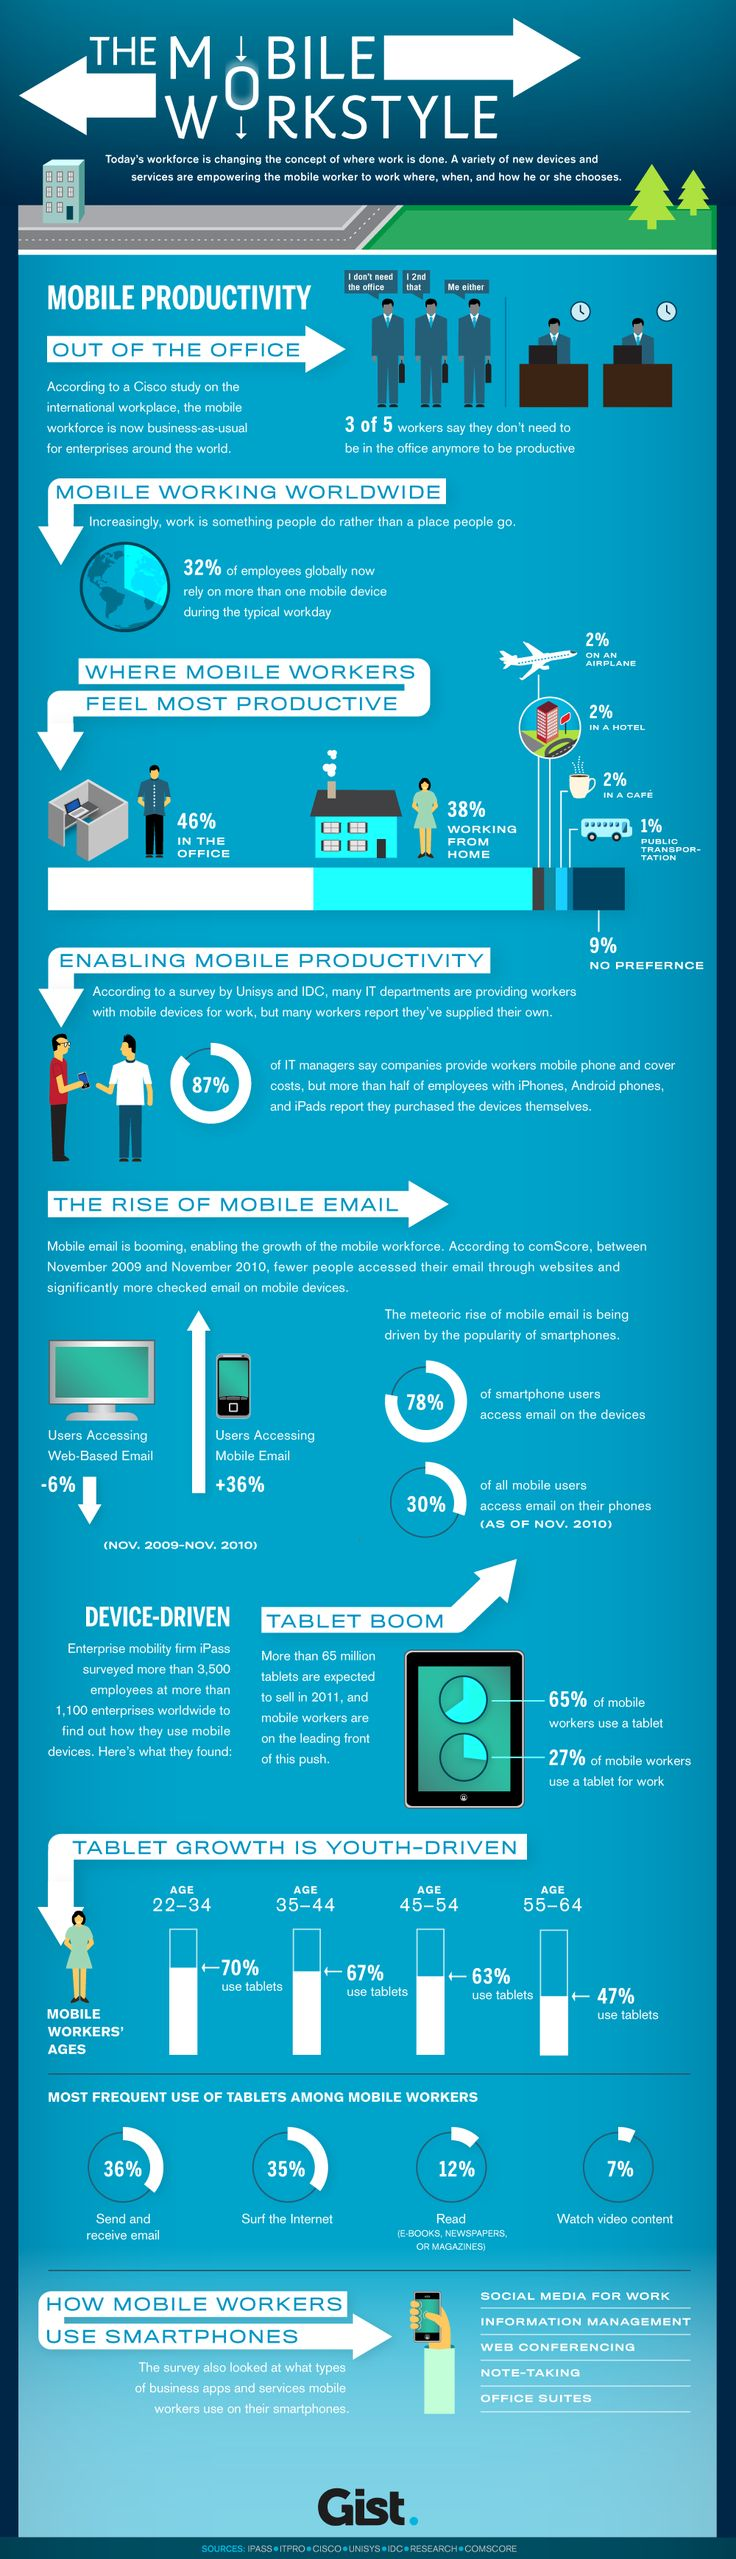 The mobile workstyle #mobility #mobil